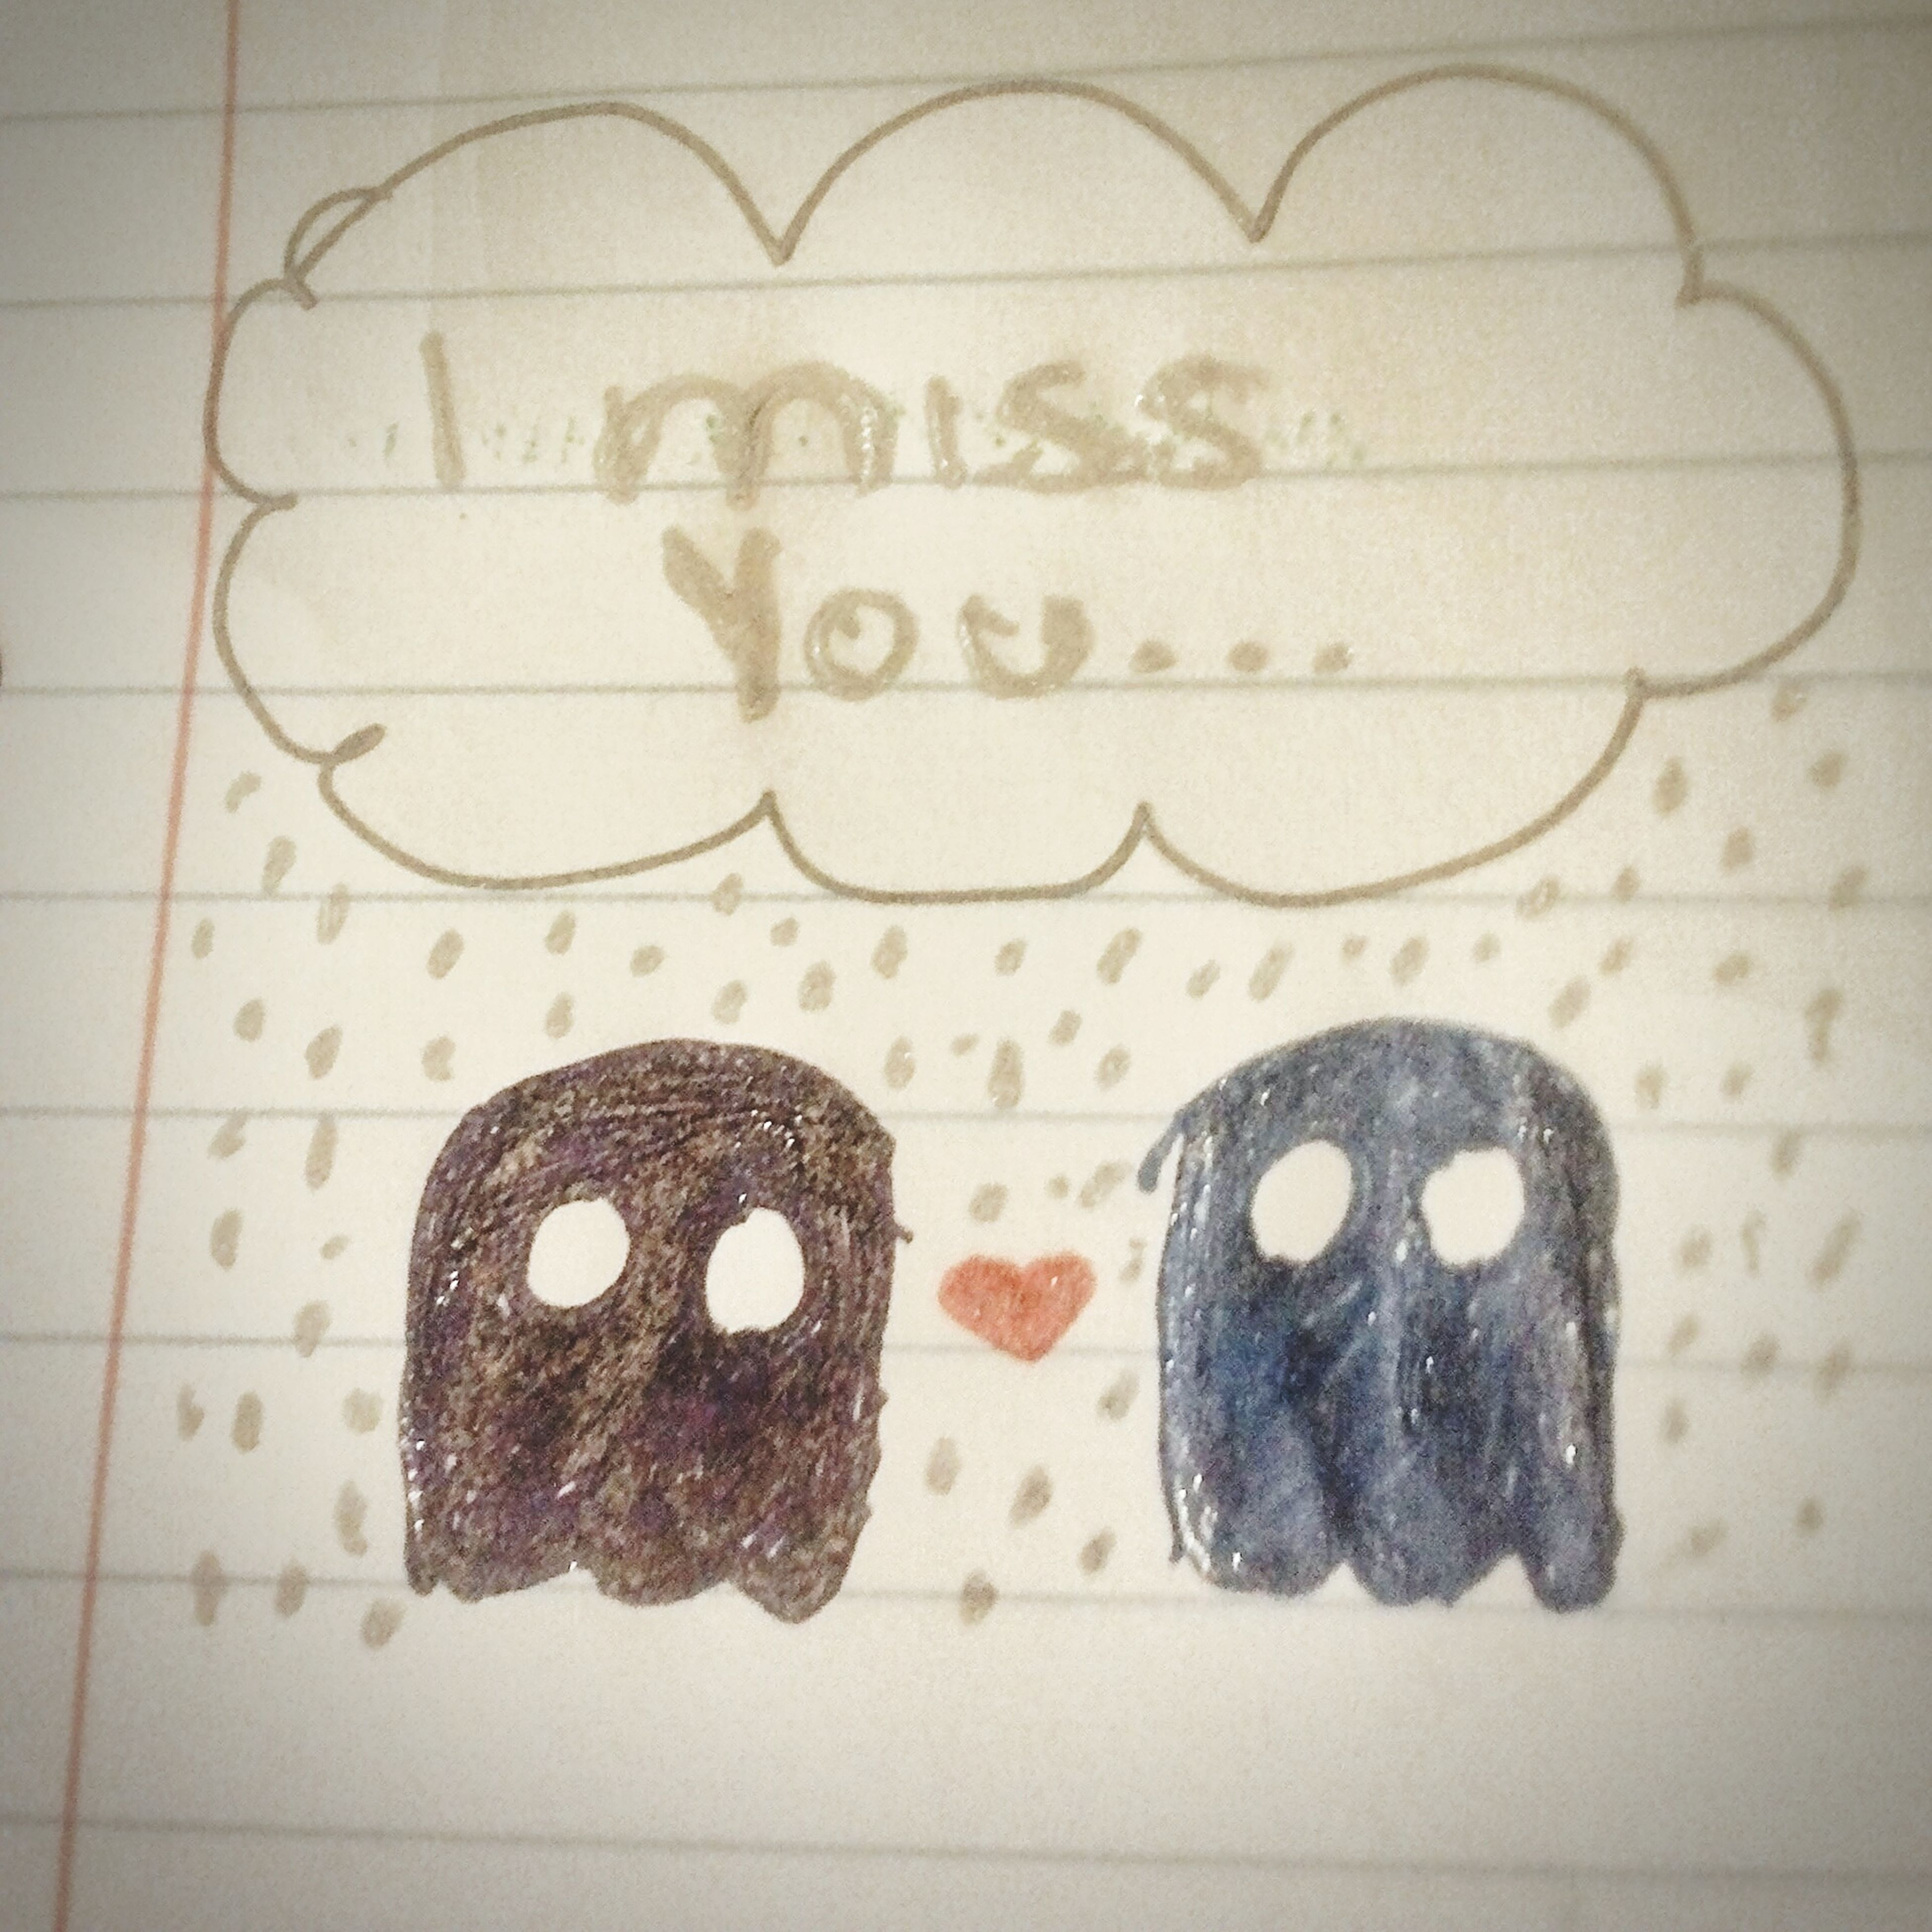 Love ♥ Memories ❤ Never Slip Away Ex Boyfriend I Miss You ❤ Thinking About You Yesterday Was Our Glory Days. Always Be Here For You